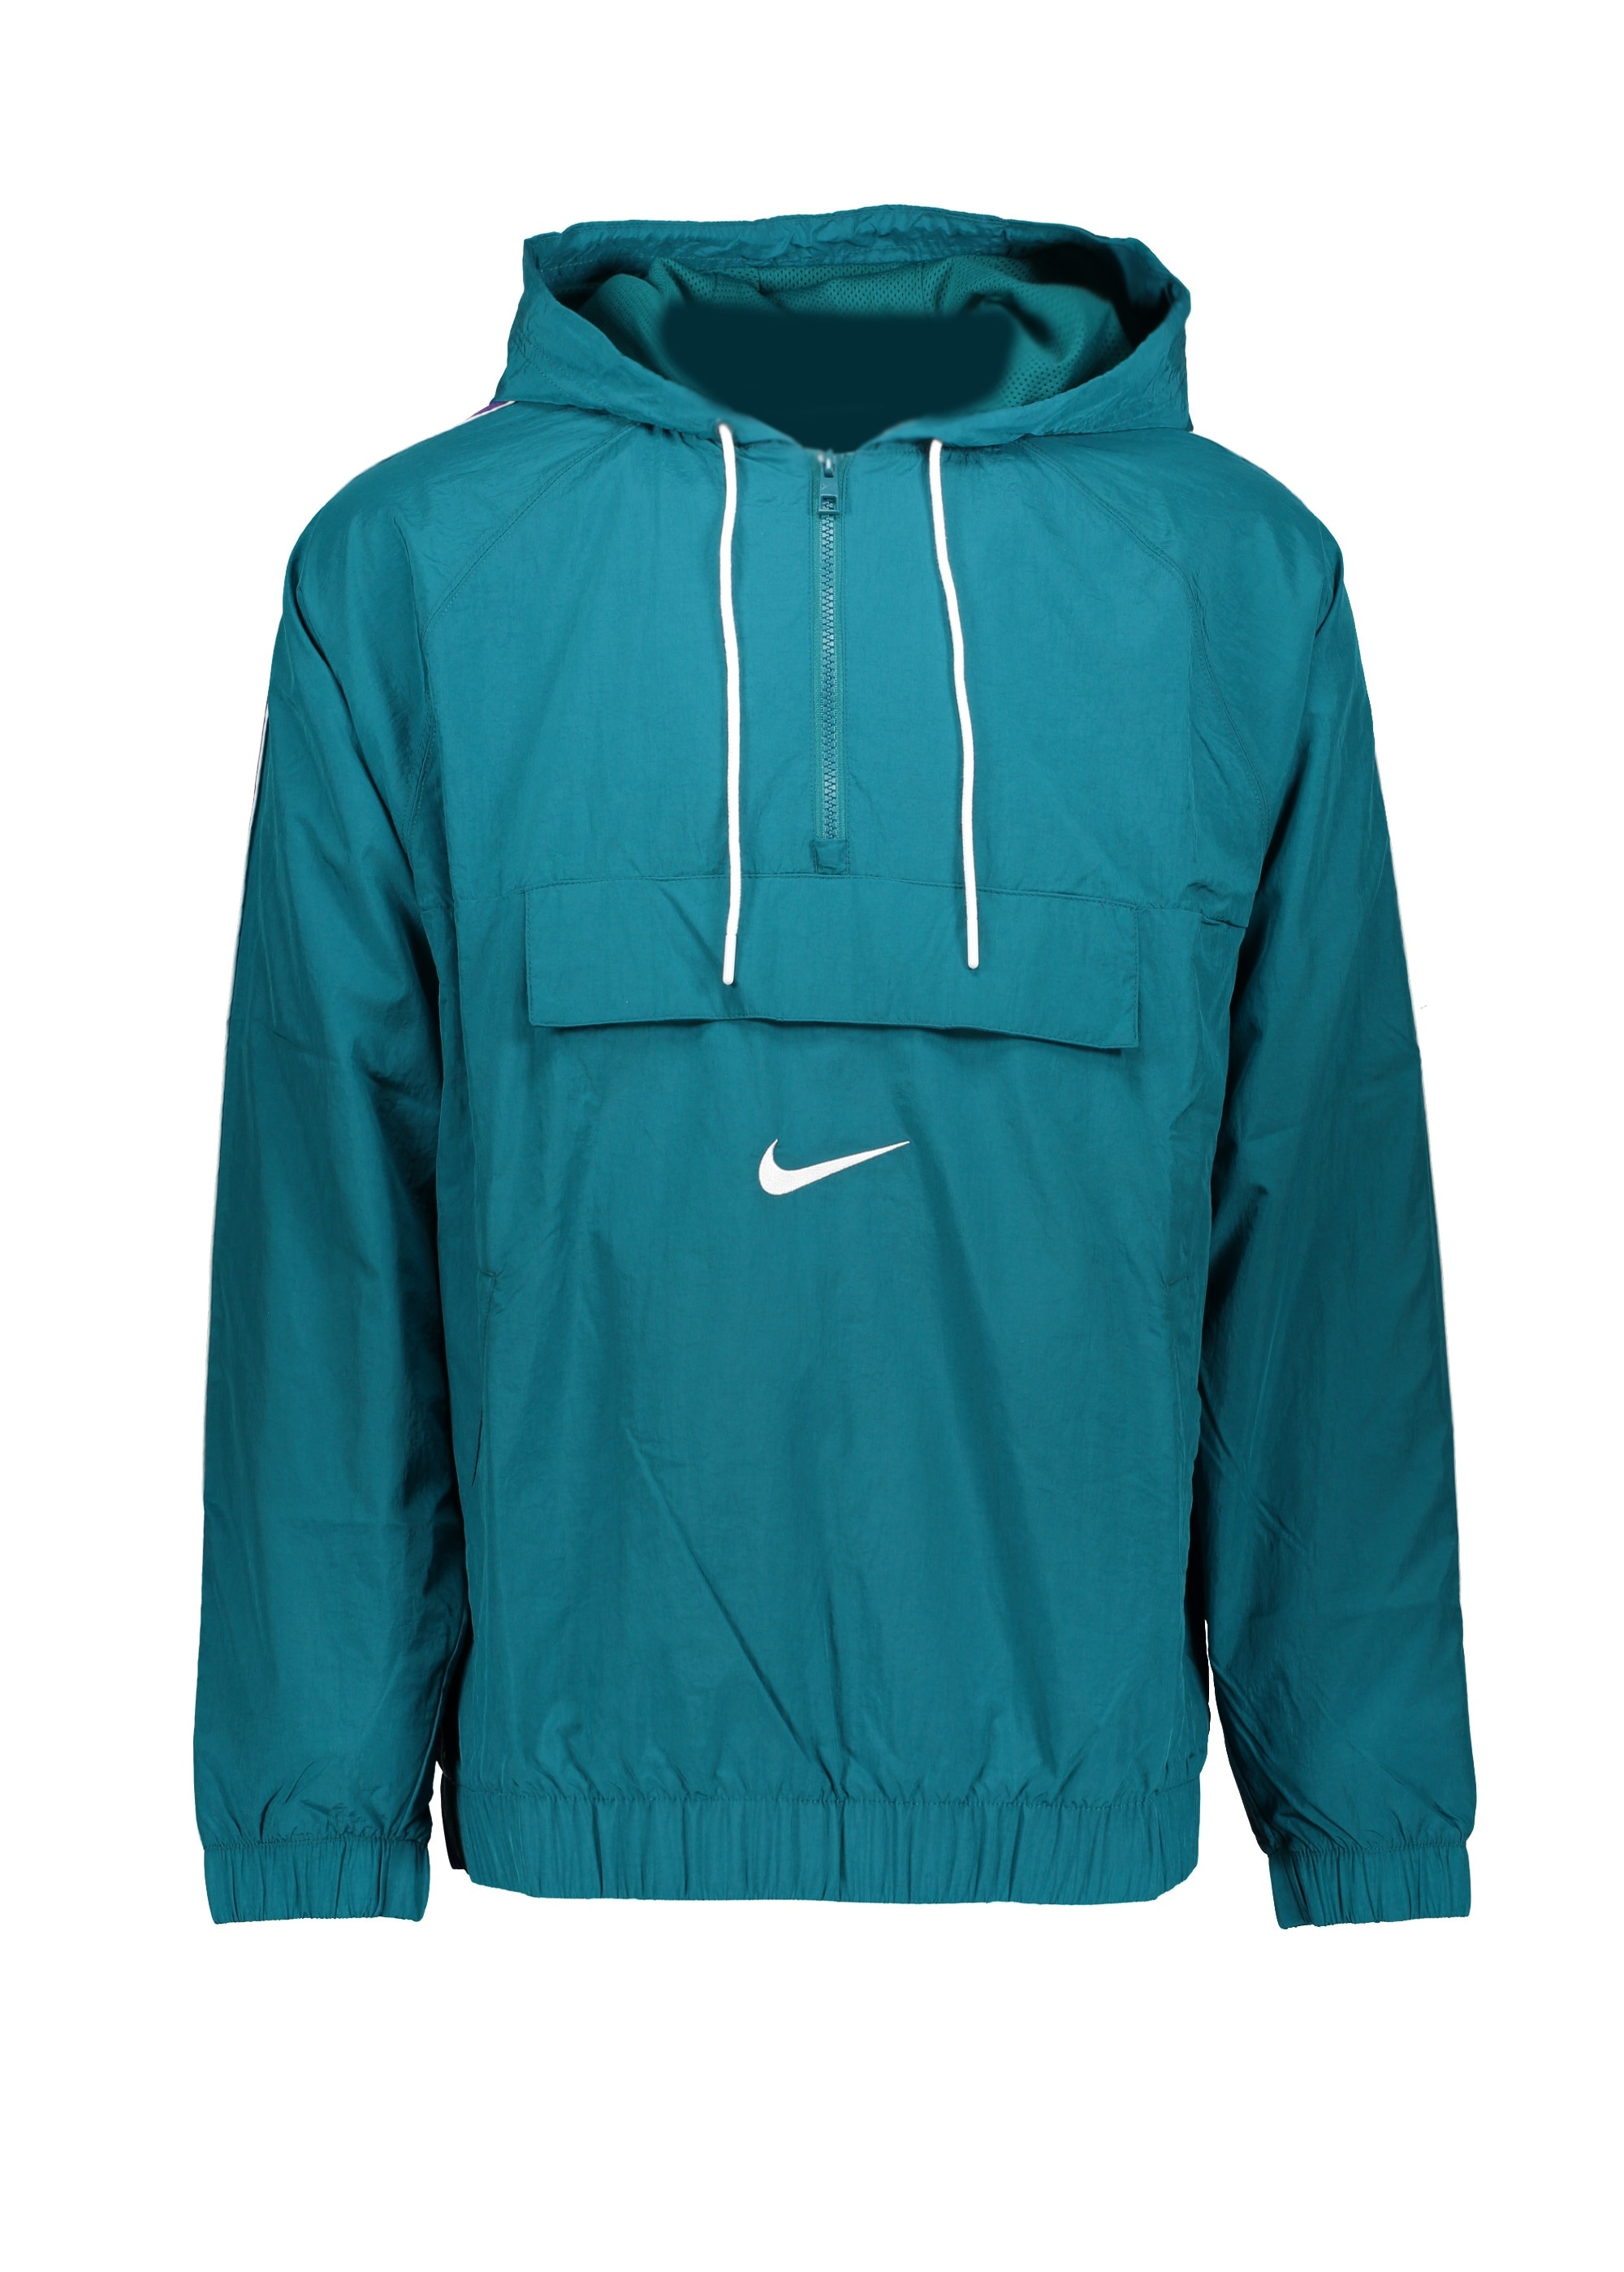 ce5400d55 Nike Apparel Swoosh Woven Jacket 381 - Geode Teal - Track Tops from ...